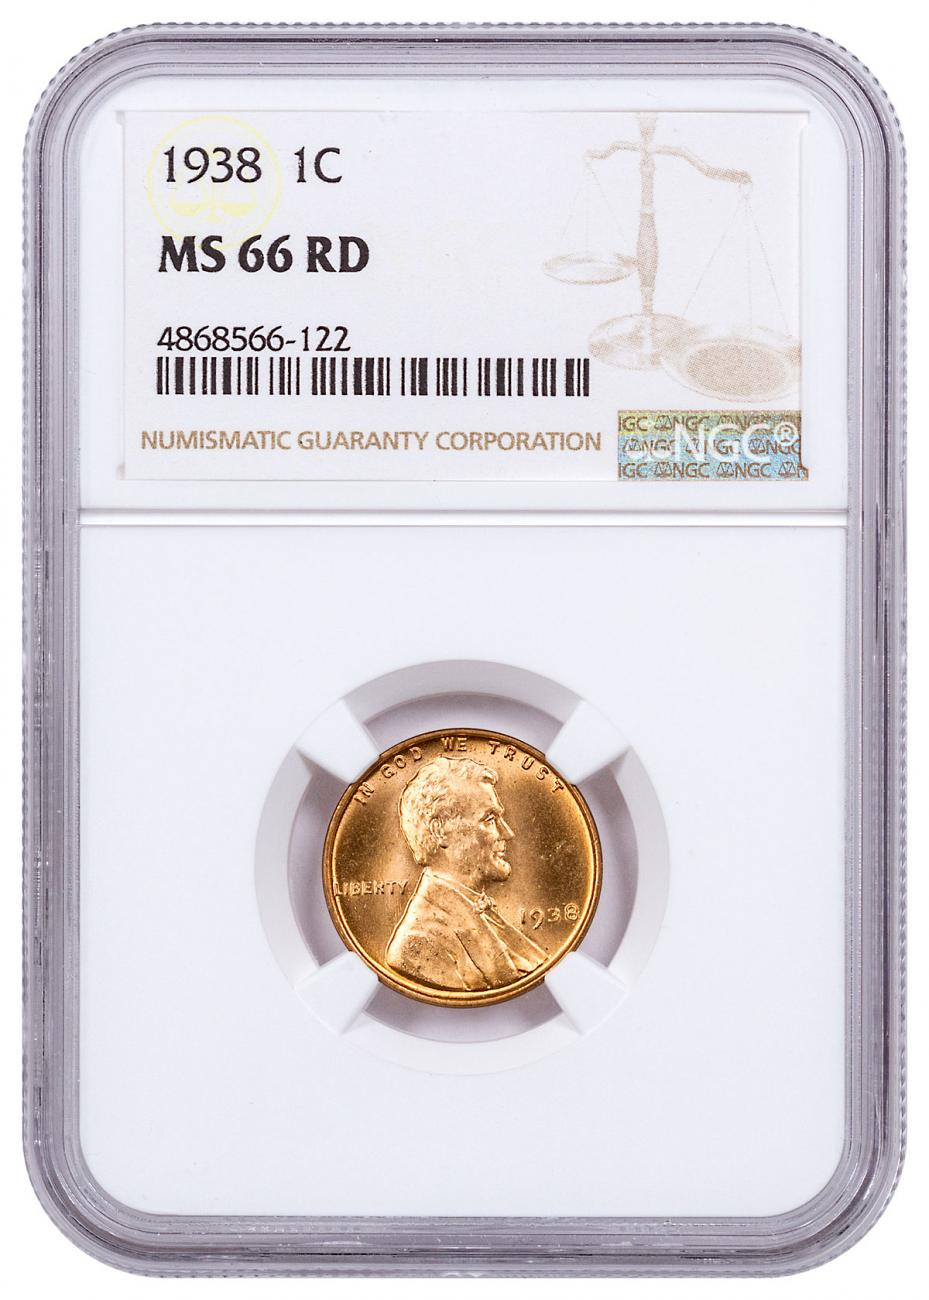 1938 Lincoln Cent NGC MS66 RD